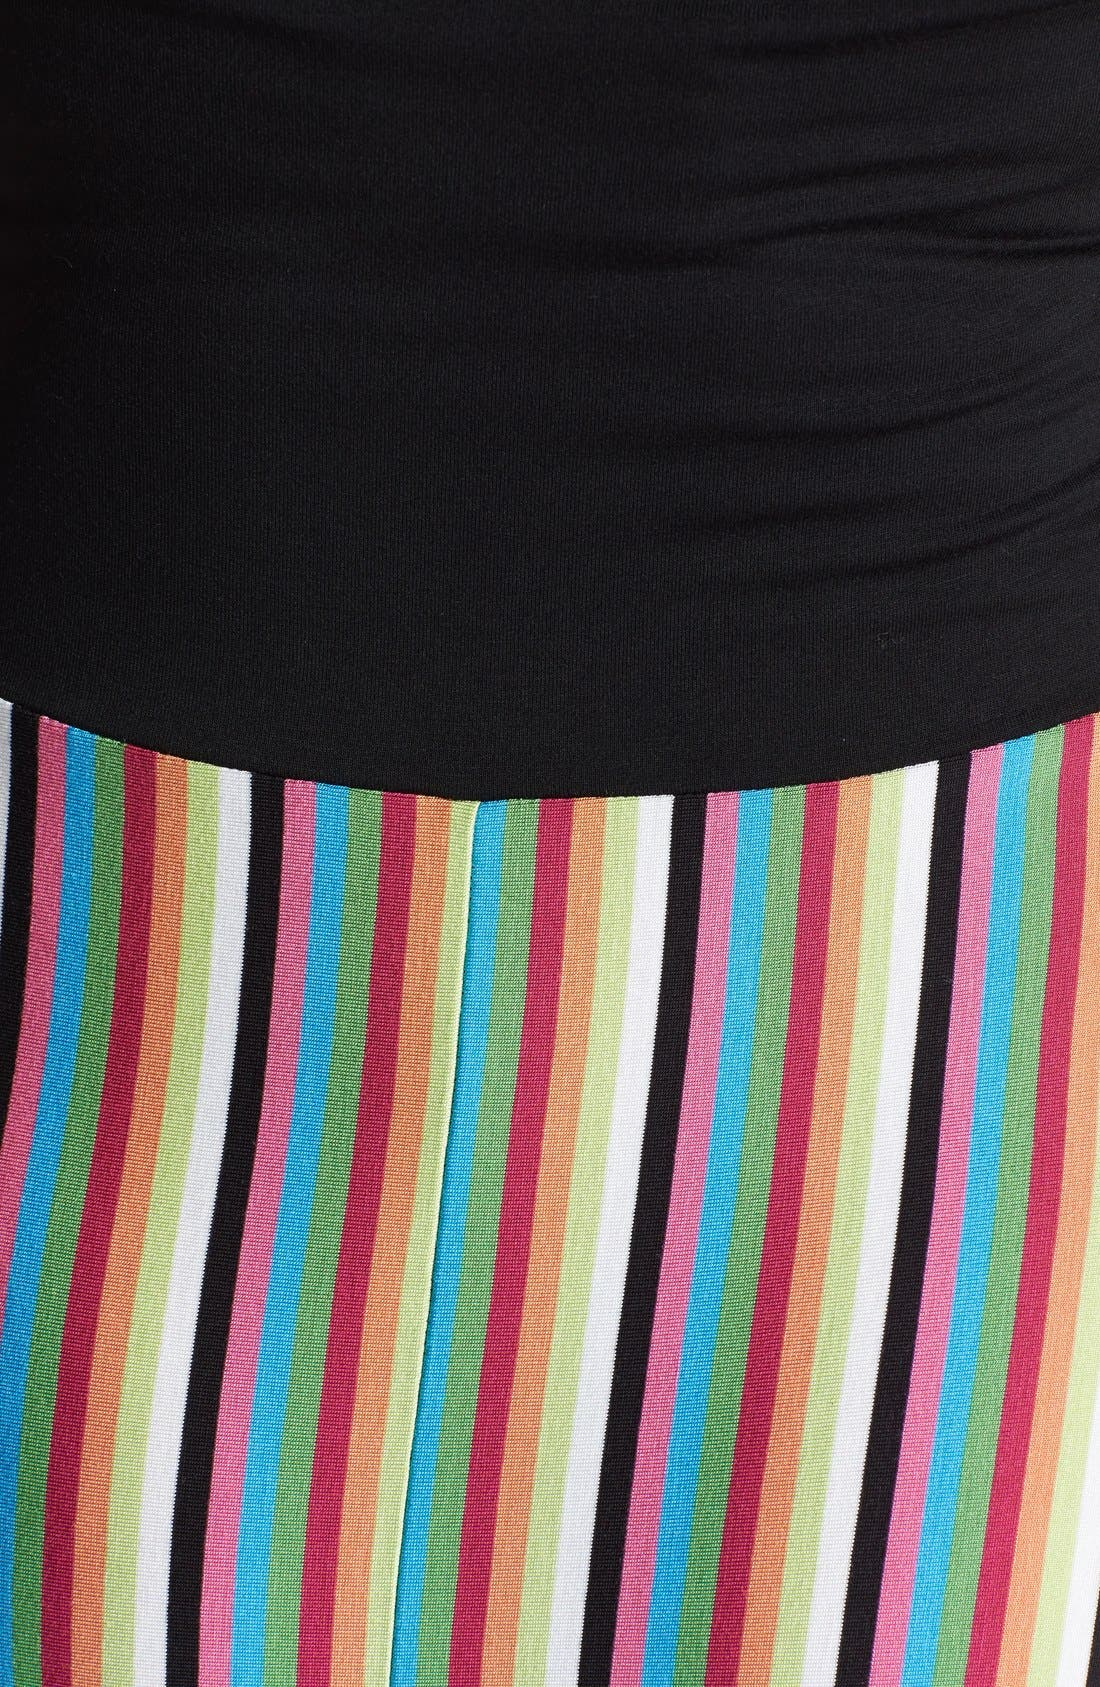 Alternate Image 3  - Felicity & Coco Stripe Strapless Maxi Dress (Plus Size) (Nordstrom Exclusive)